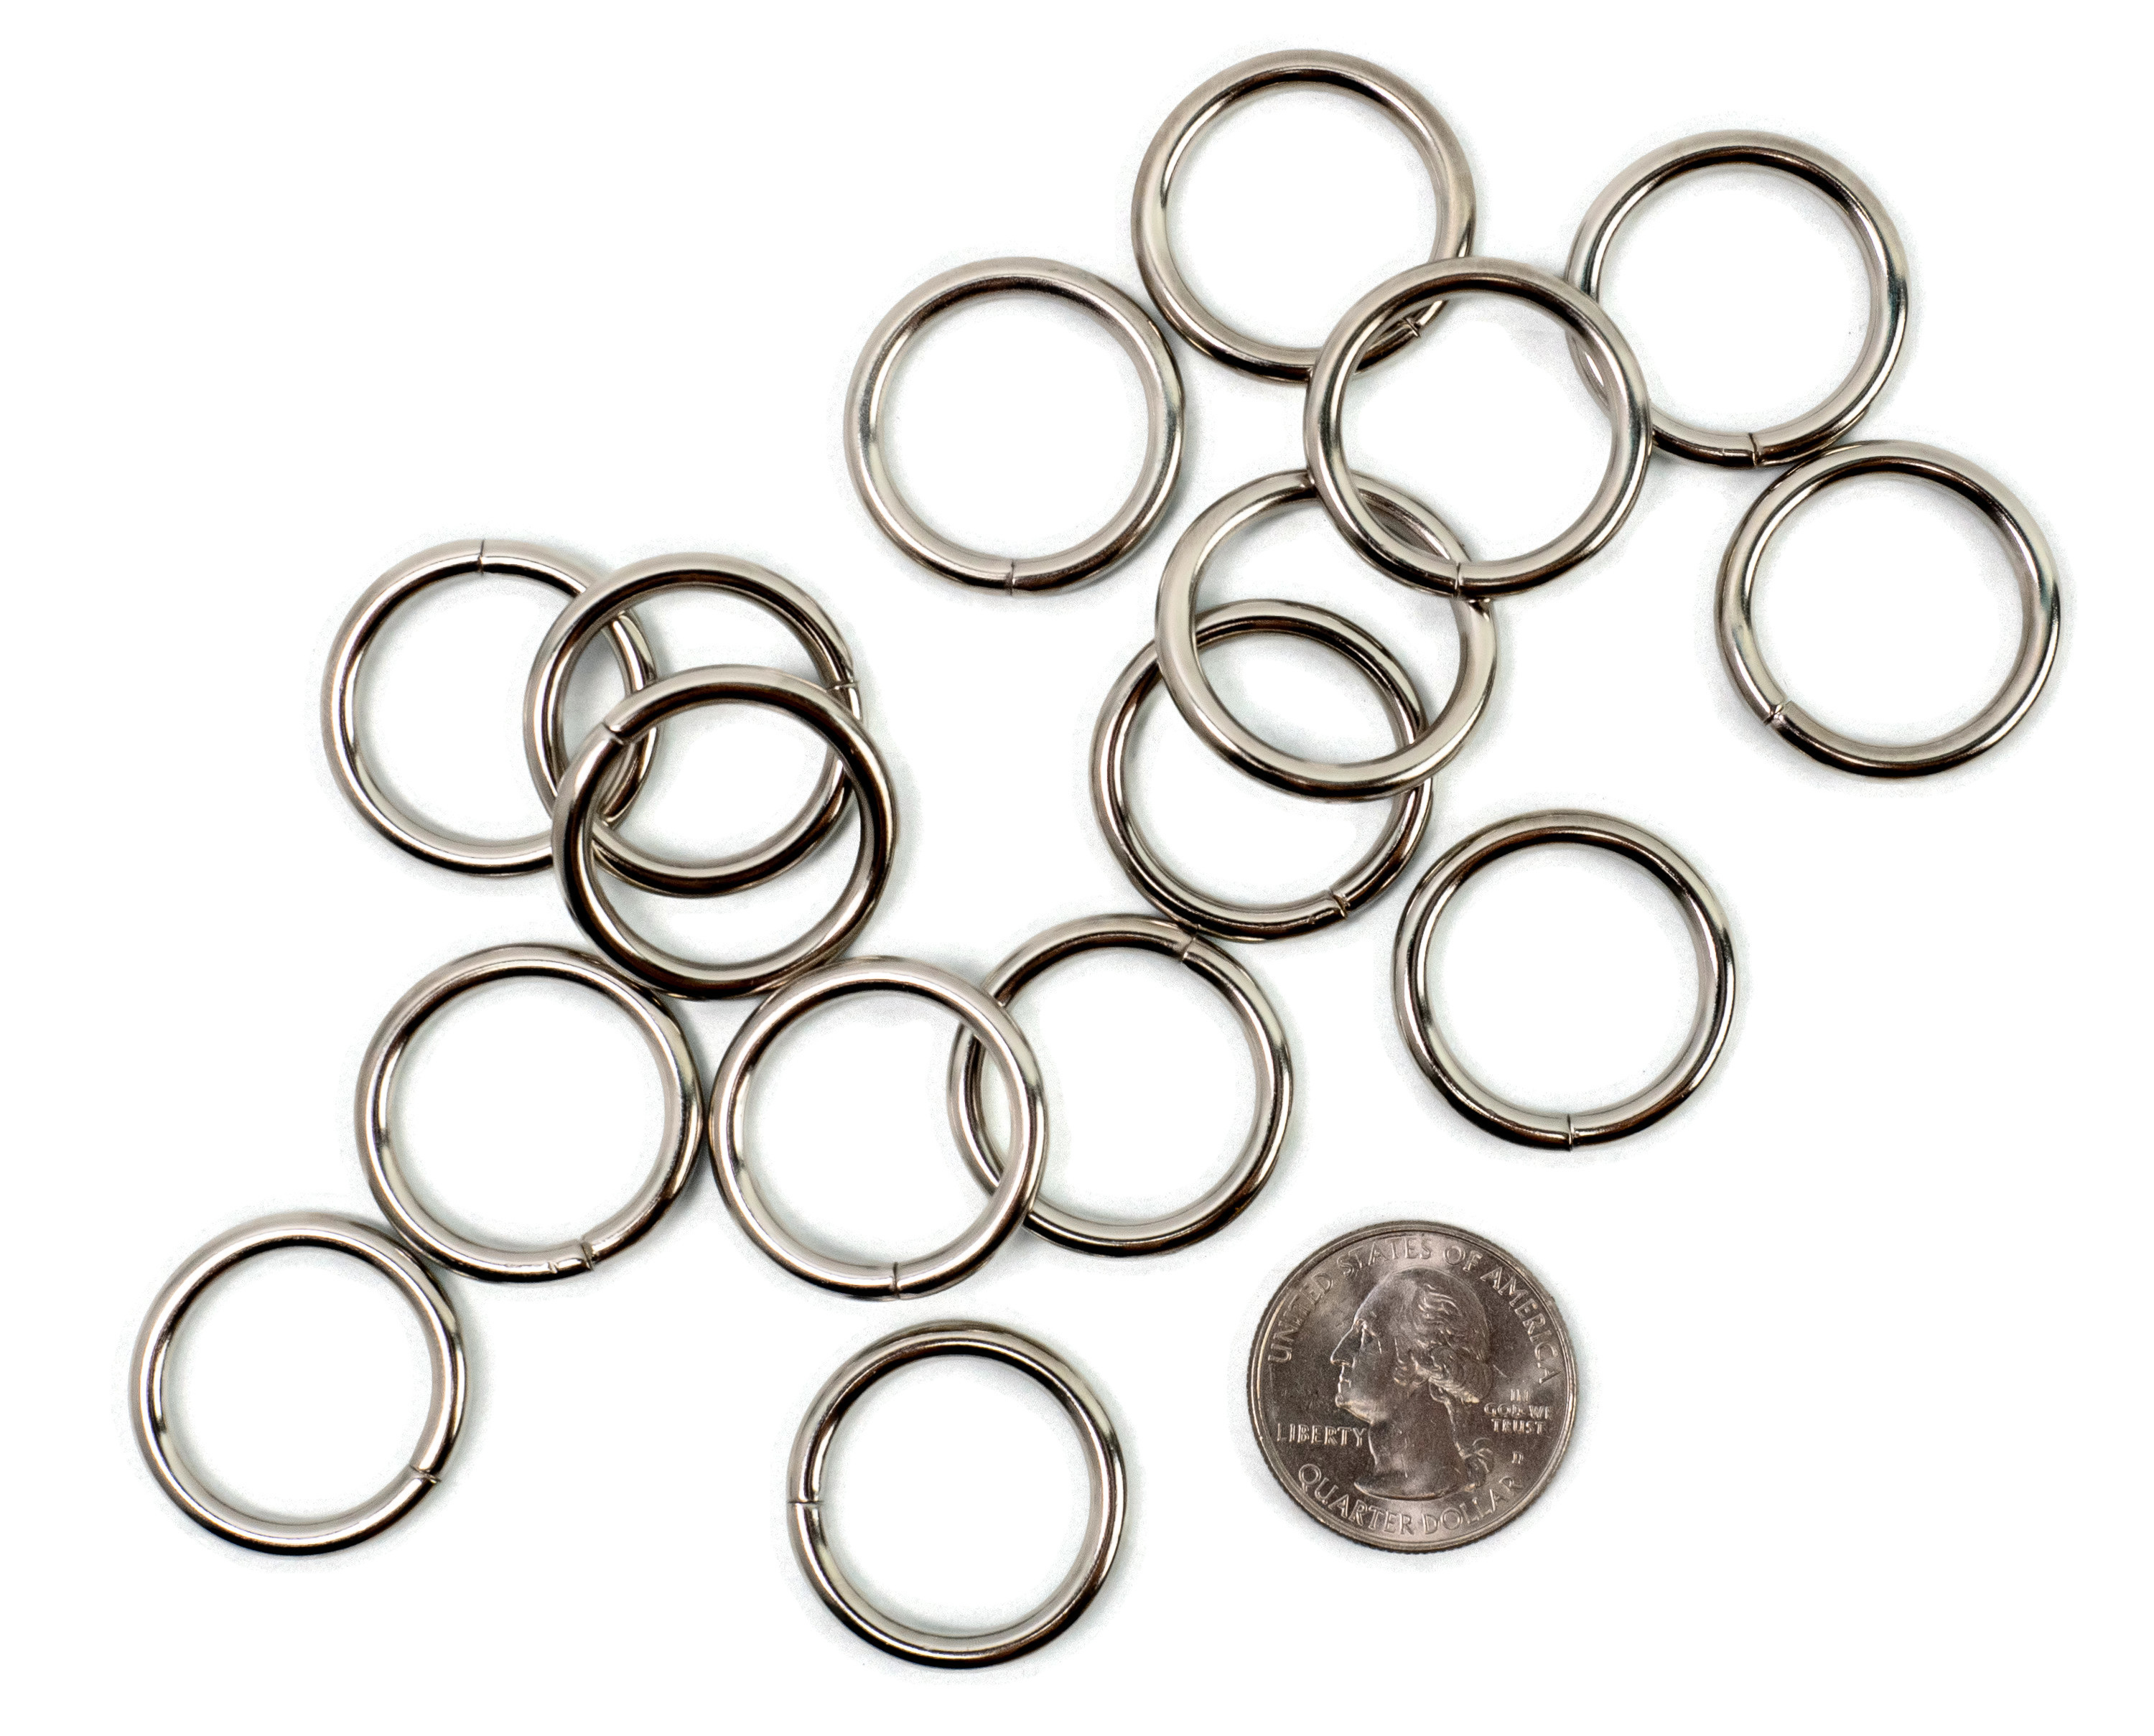 Stainless Steel - 19 mm O Ring